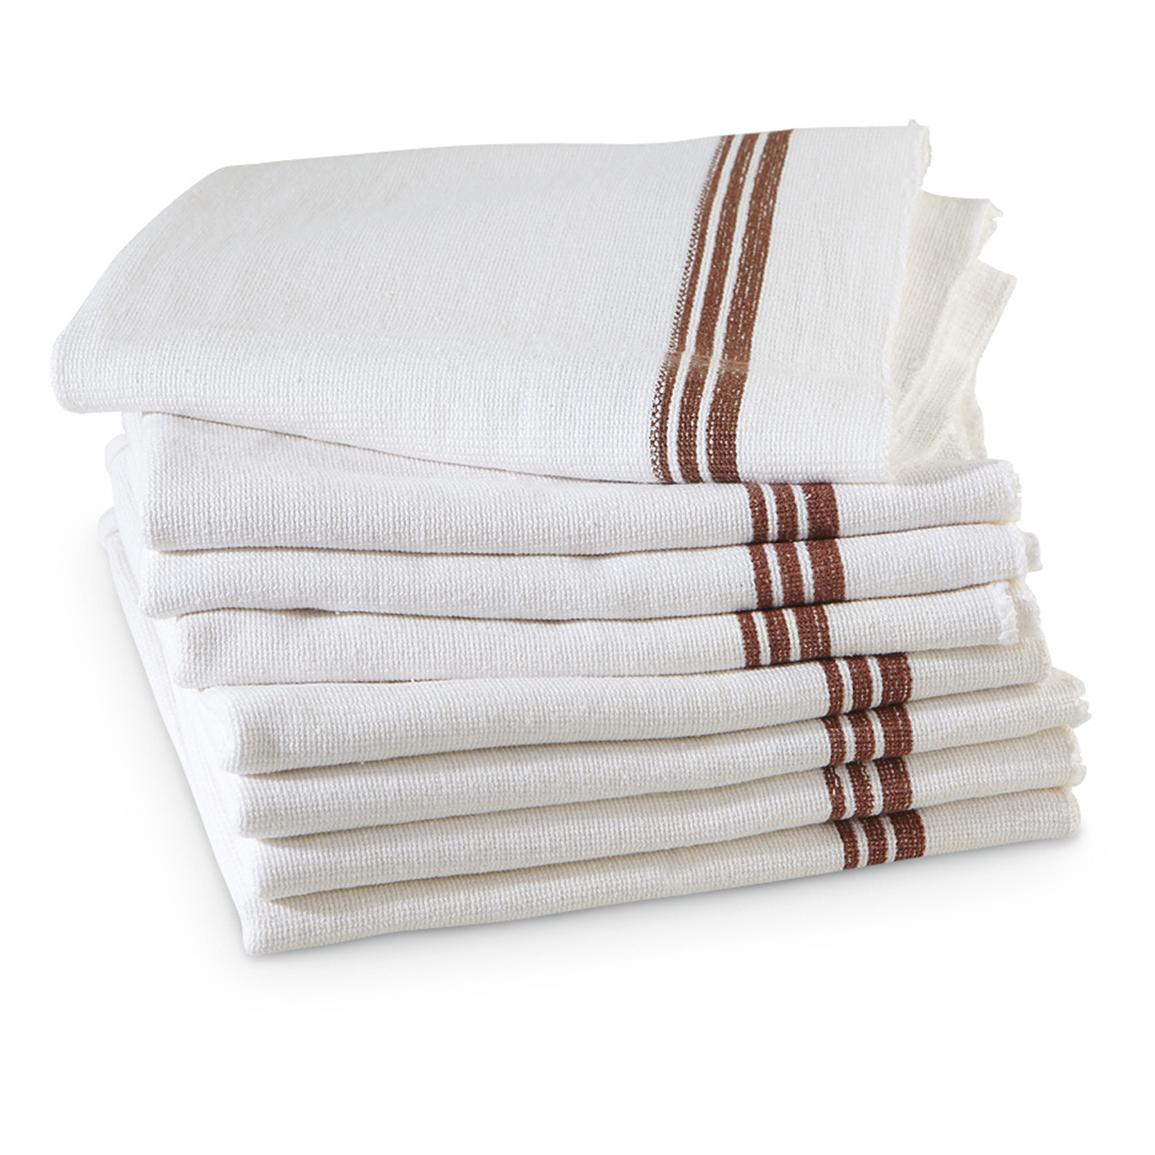 8 new hungarian military towels white with brown stripes for How to get towels white